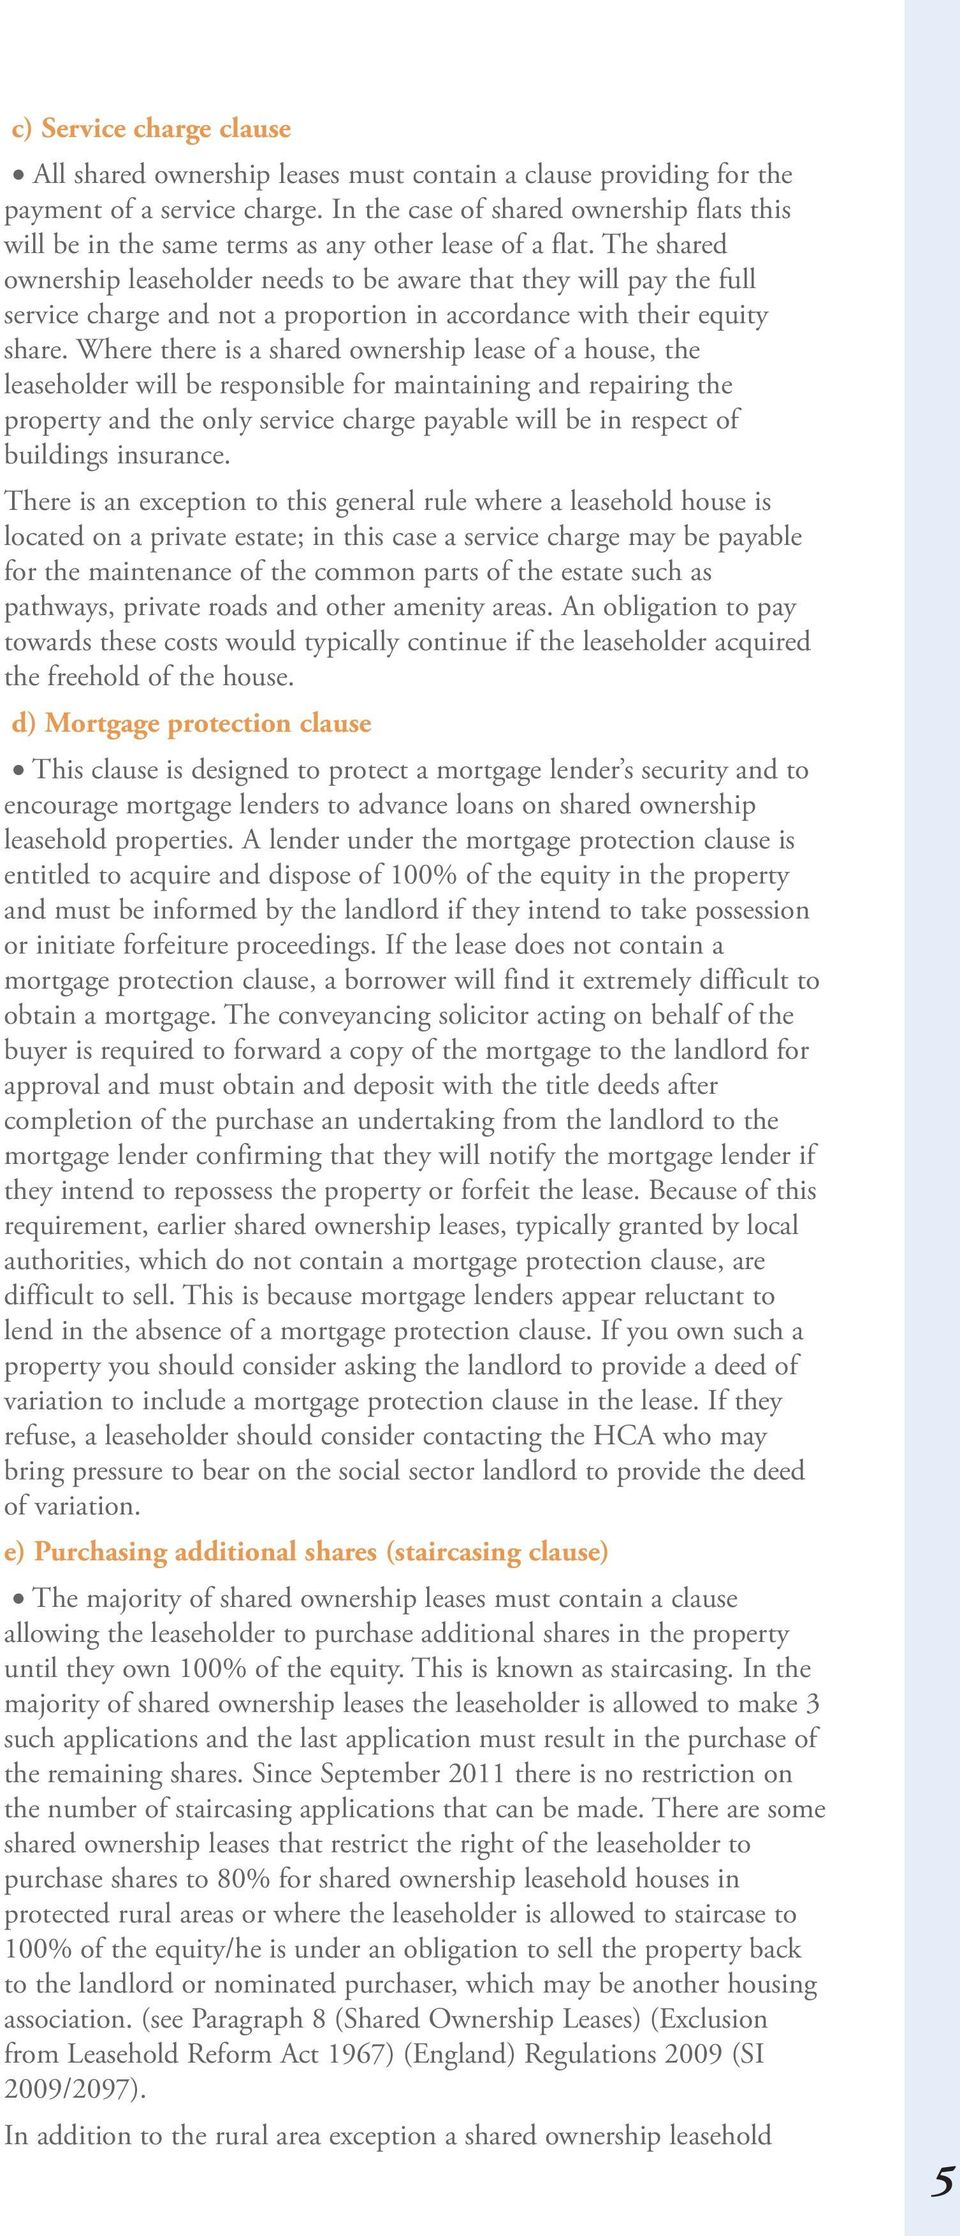 The shared ownership leaseholder needs to be aware that they will pay the full service charge and not a proportion in accordance with their equity share.